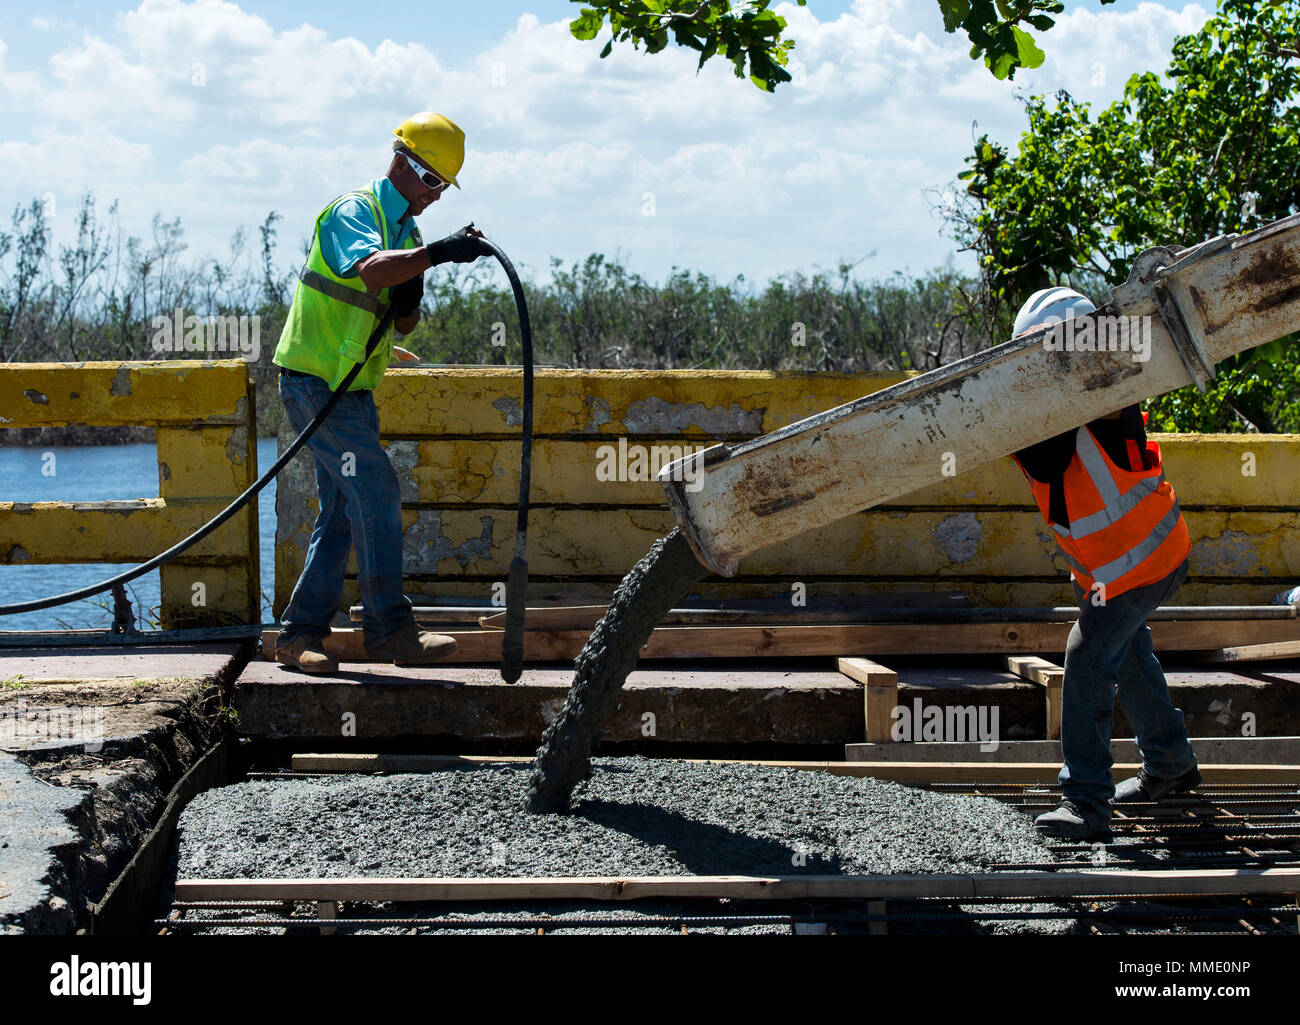 Employees of the Del Valle Group, S.P., pour concrete  to repair a bridge damaged during Hurricane Maria in Toa Baja, Puerto Rico, Oct. 24, 2017. (U.S. Air Force photo by Airman 1st Class Nicholas Dutton) - Stock Image